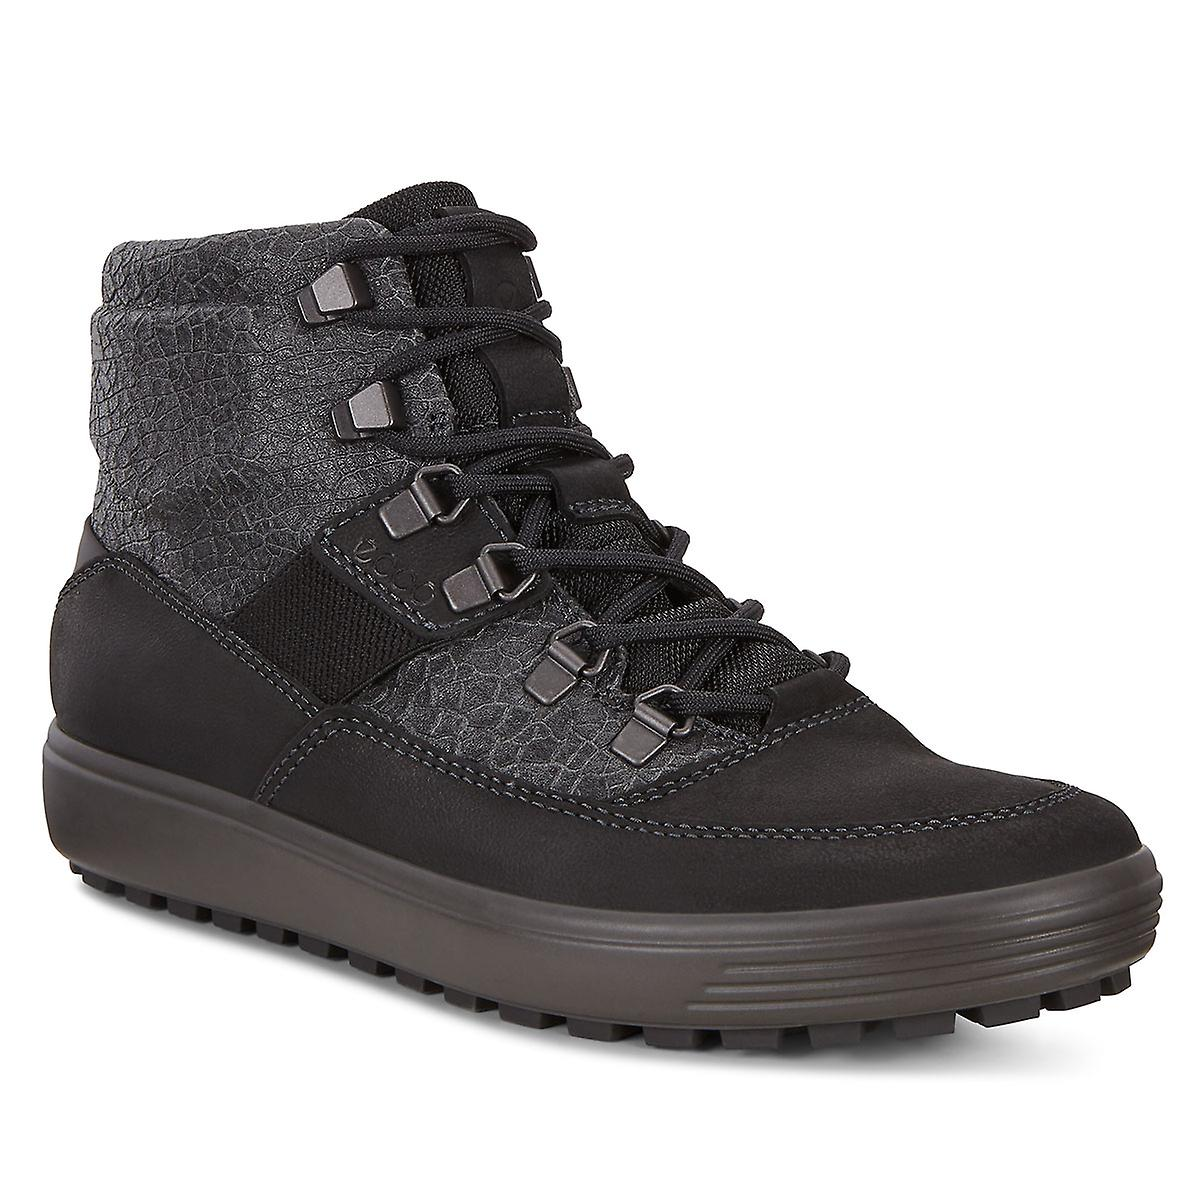 Ecco Womens Soft 7 Tred Trainers a4qr0